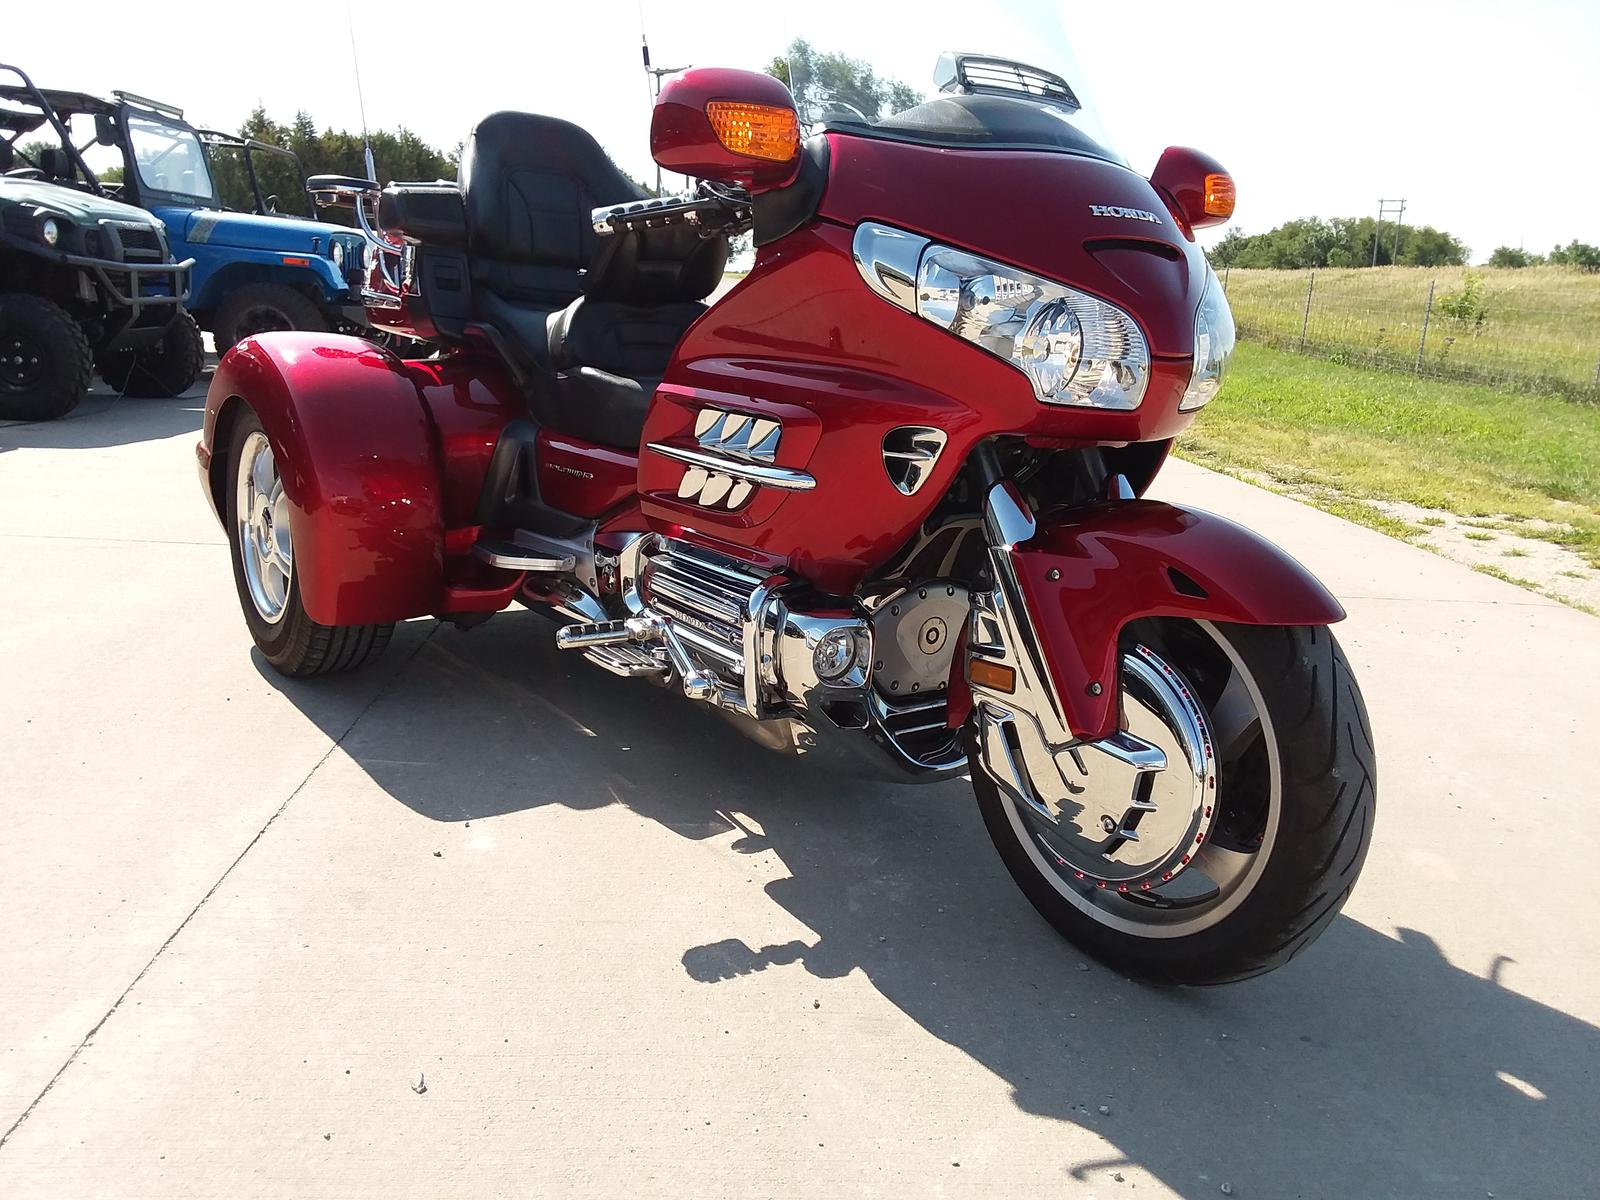 2008 Champion Trikes Honda Goldwing 1800